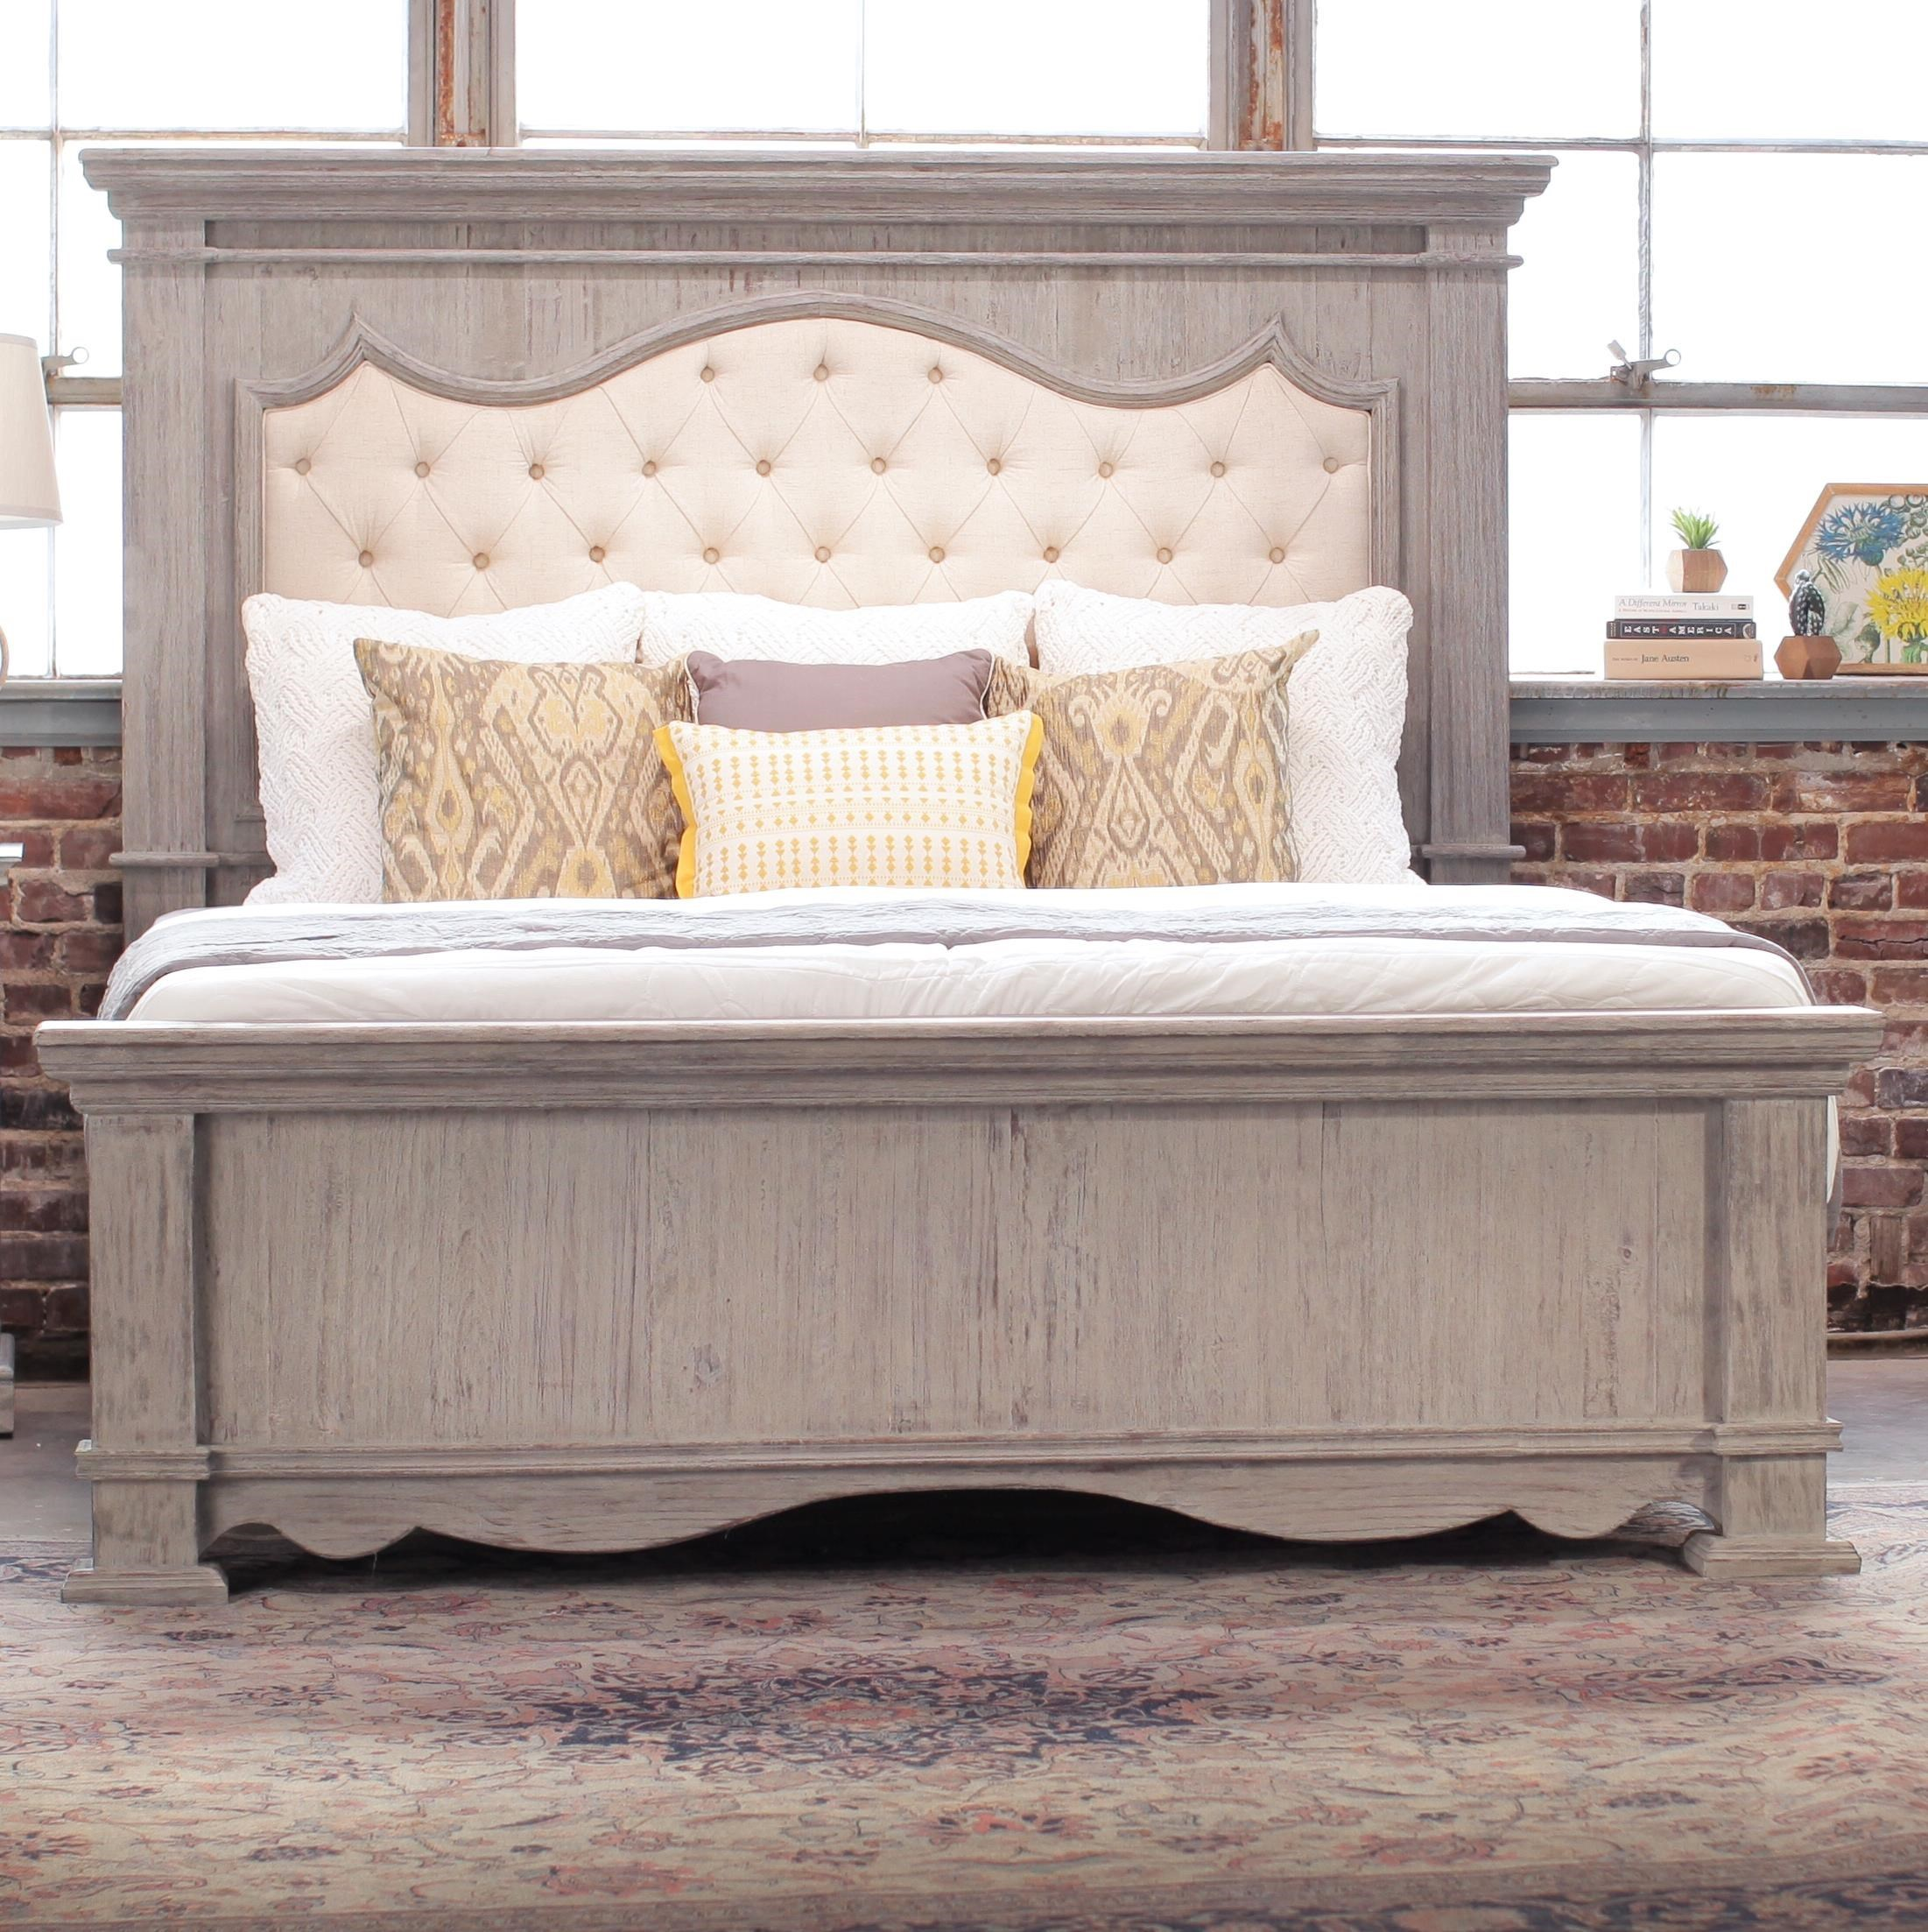 Genial Rustic Imports Fifth AveRustic Mansion King Bed ...